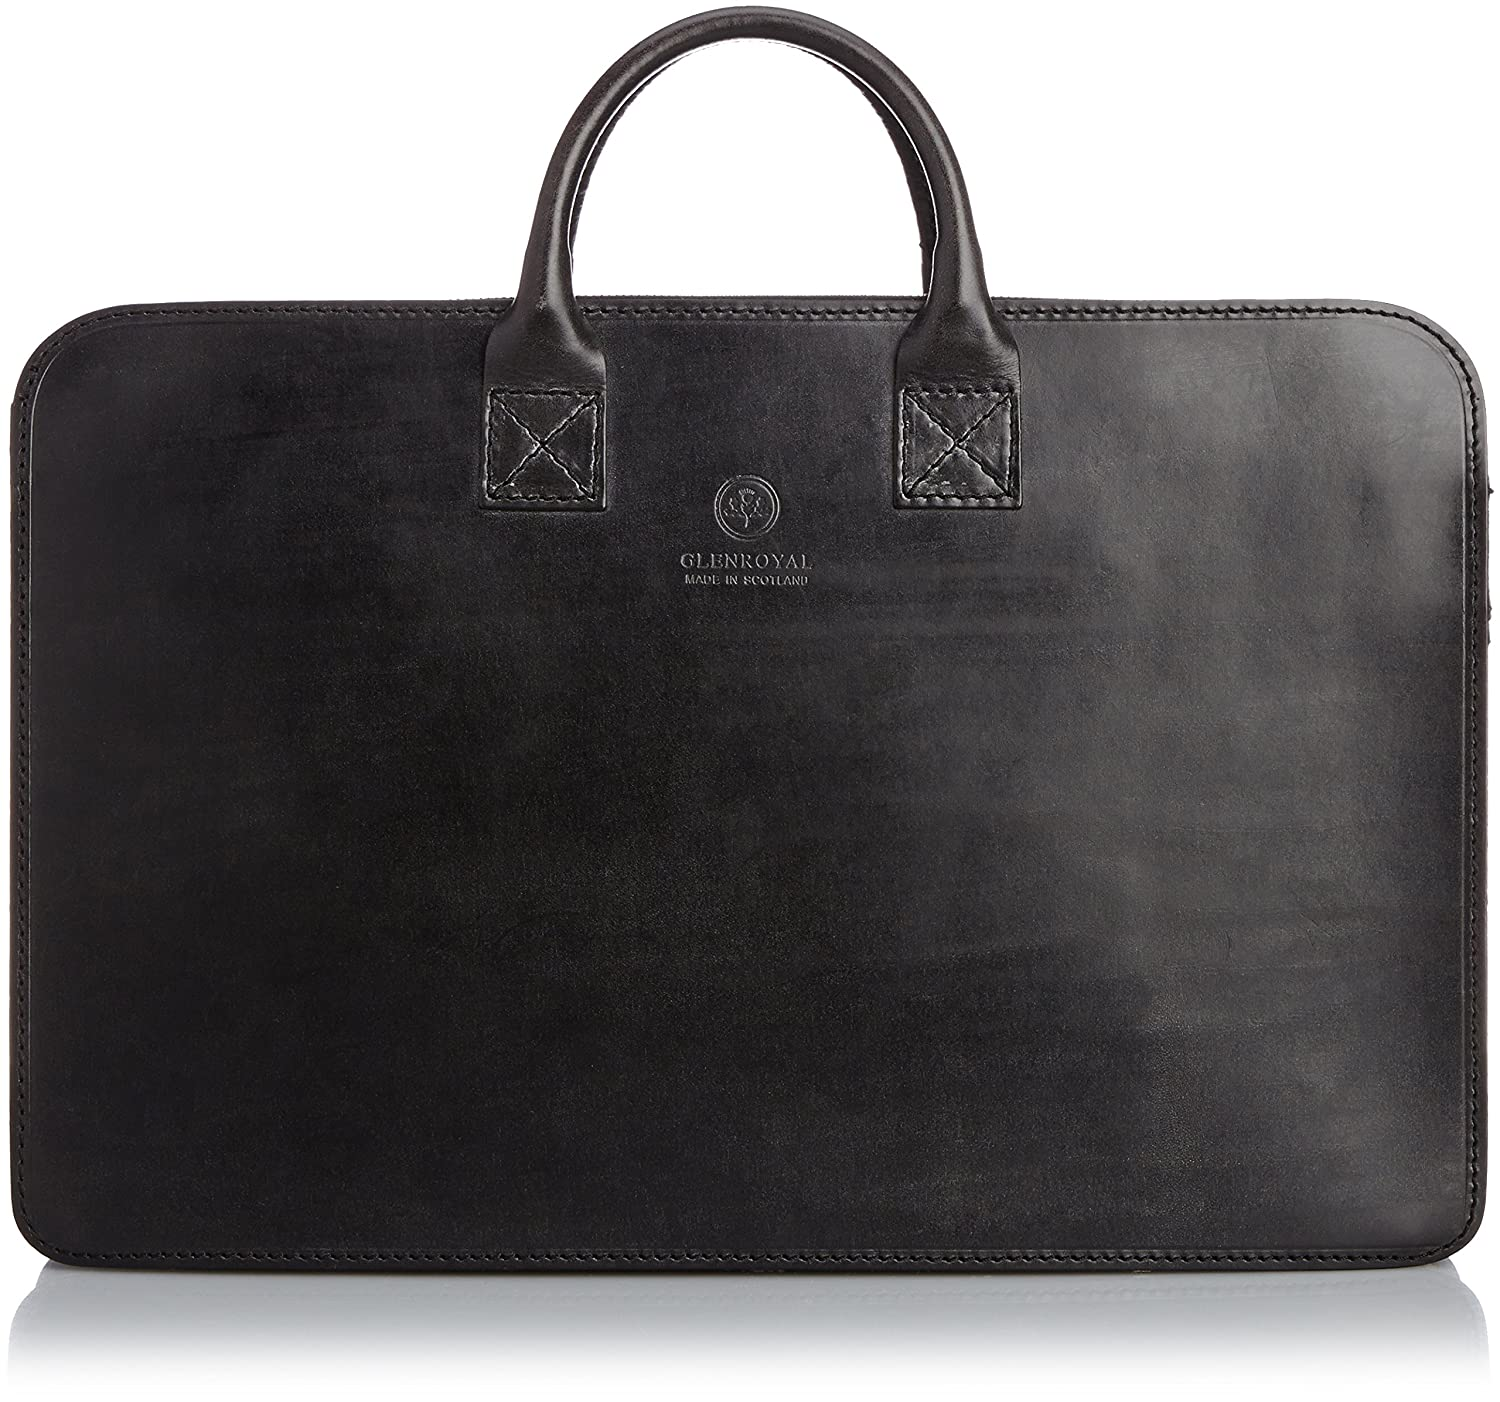 [グレンロイヤル] ブリーフケース LIGHT WEIGHT BRIEF CASE 02-5258 B00N9MSH9M New Black New Black